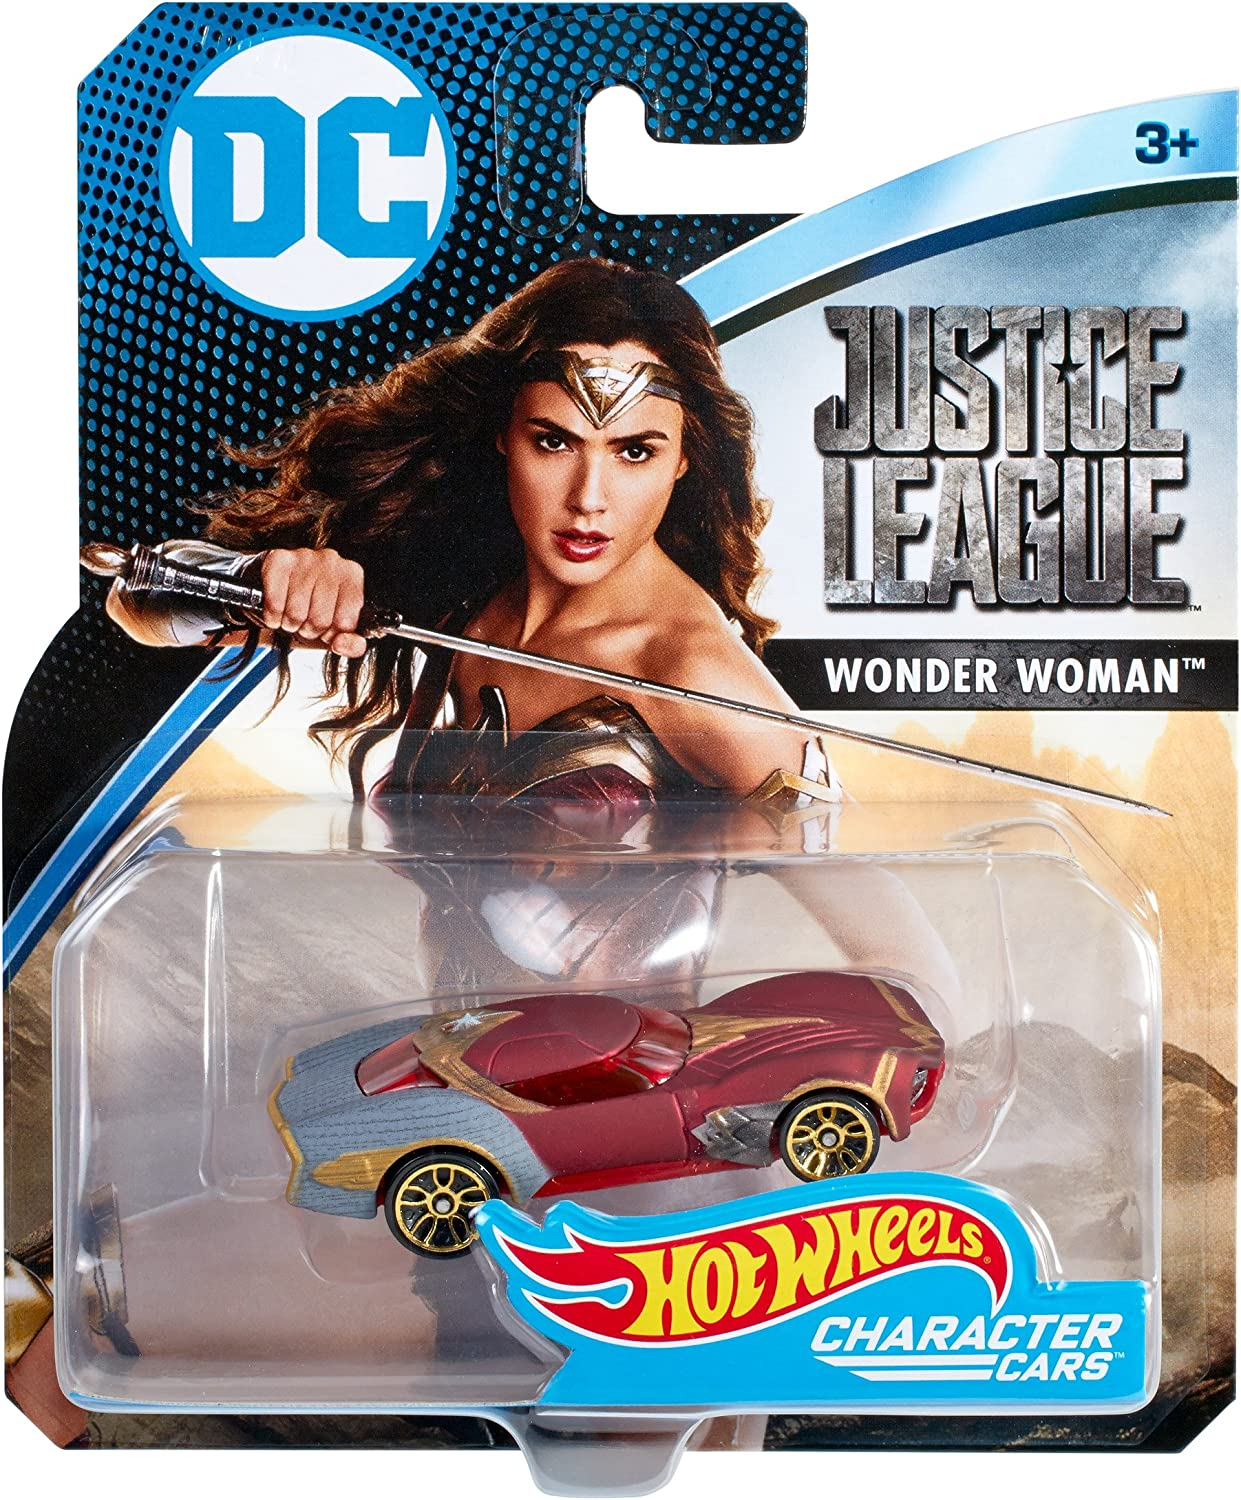 DC Wonder Woman Justice League Hot Wheels Character Cars New Free Shipping